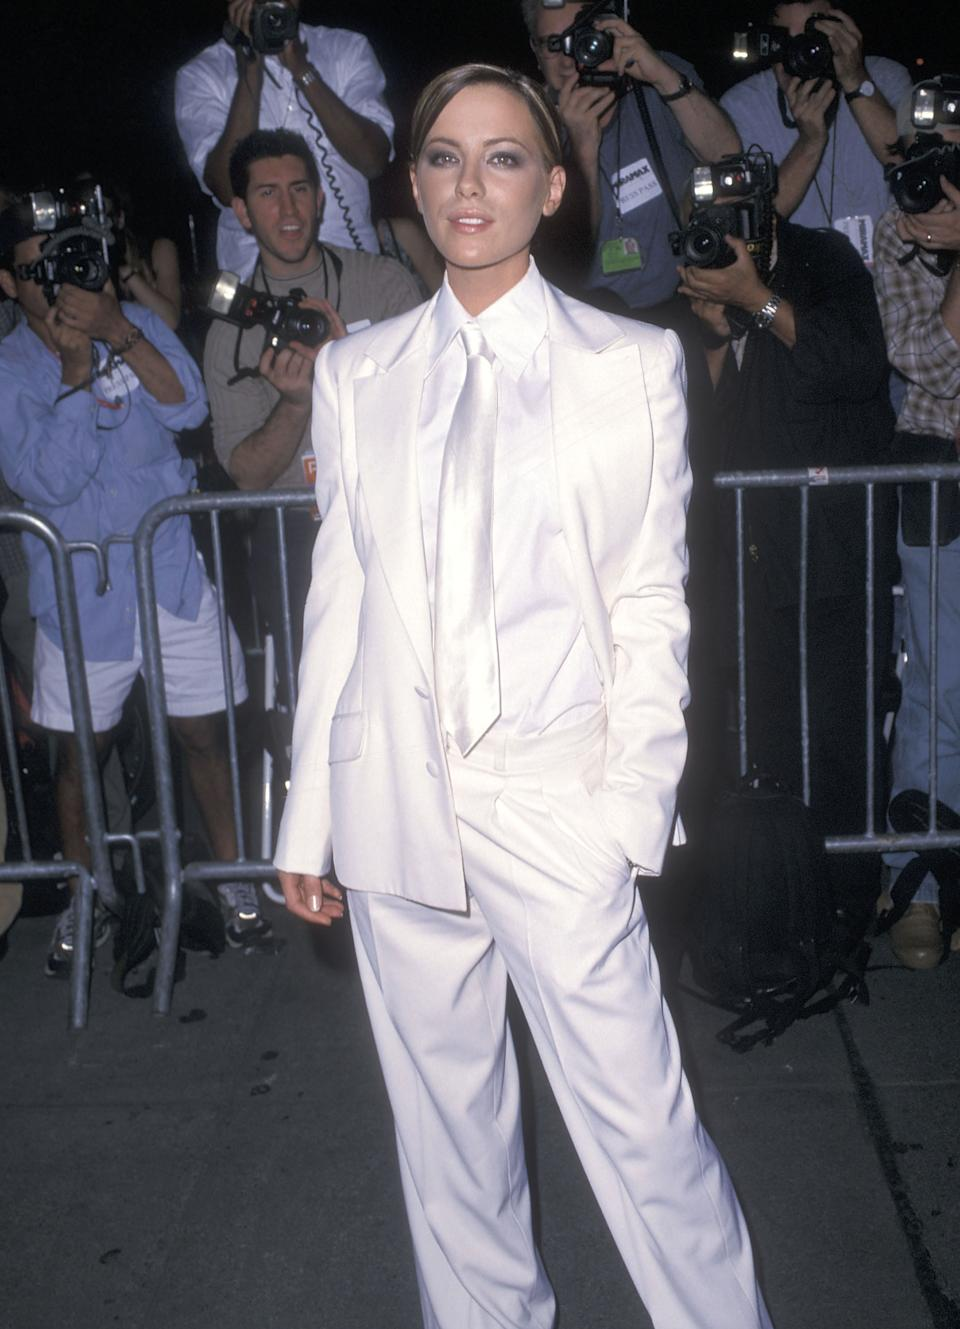 """NEW YORK CITY - OCTOBER 3:   Actress Kate Beckinsale attends the """"Serendipity"""" New YOrk City Premiere on October 3, 2001 at the Ziegfeld Theatre in New York City. (Photo by Ron Galella, Ltd./Ron Galella Collection via Getty Images)"""